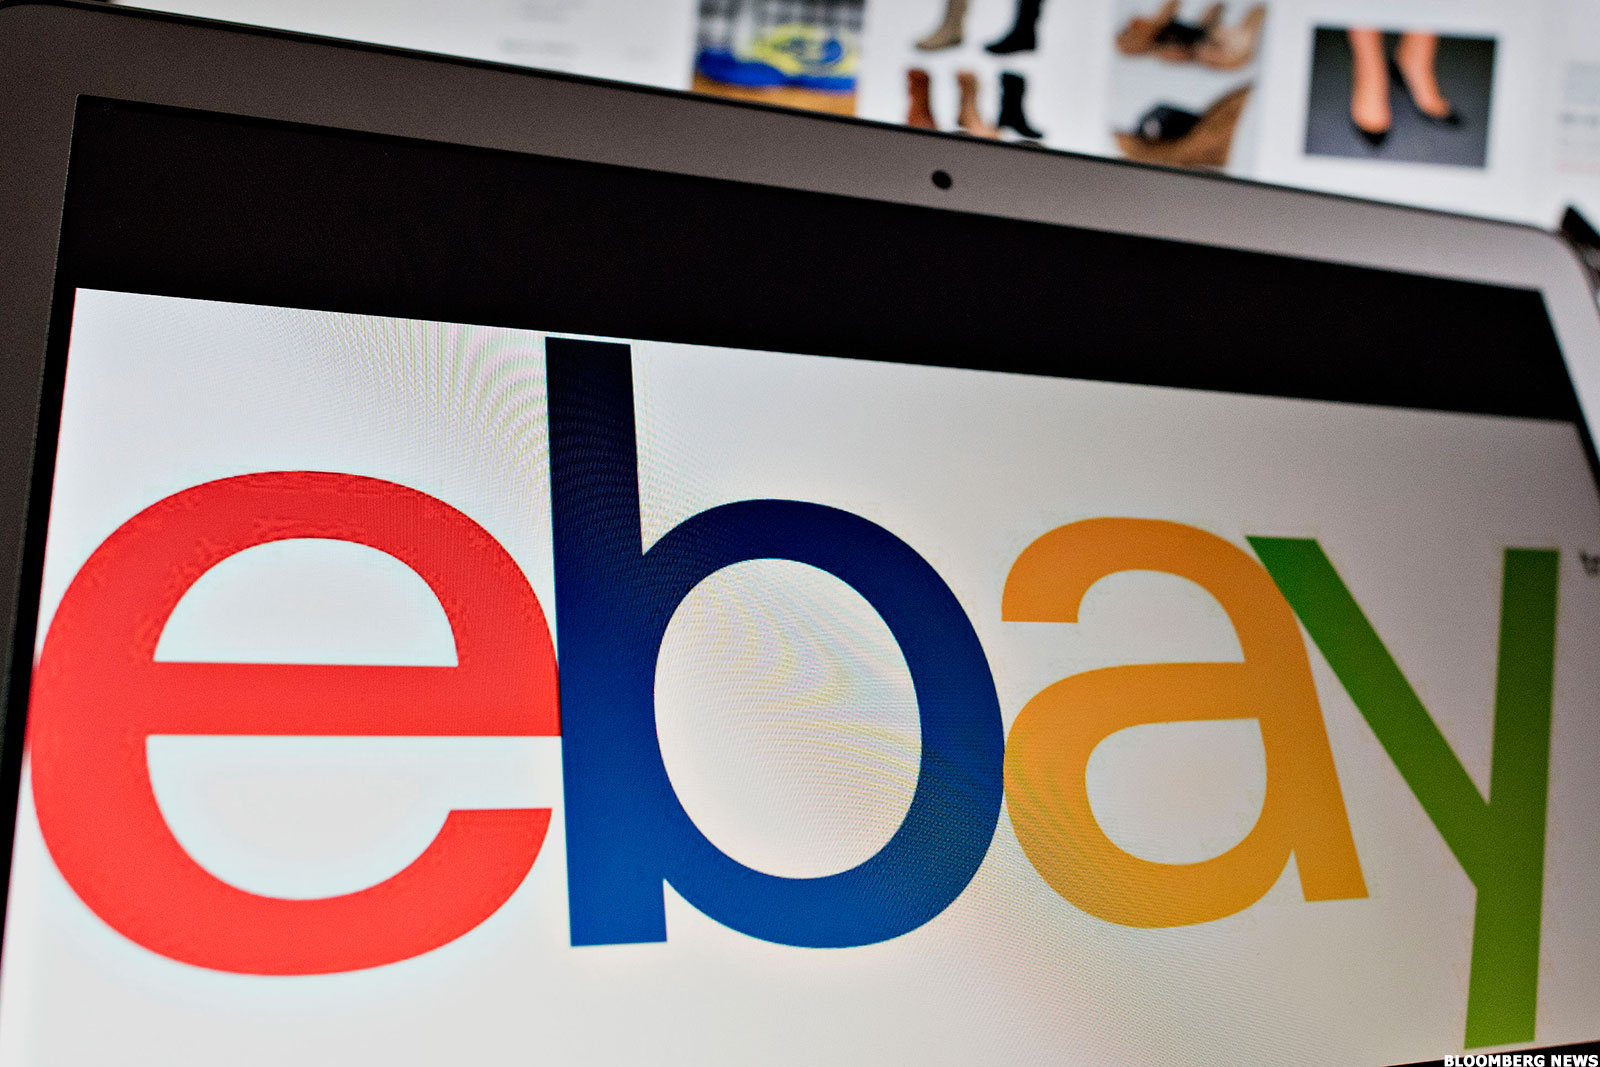 Apple and ebay take down wall street dow retreats from records verizon communications inc vz posted a better than expected third quarter net income of 89 cents a share was flat from a year earlier biocorpaavc Image collections